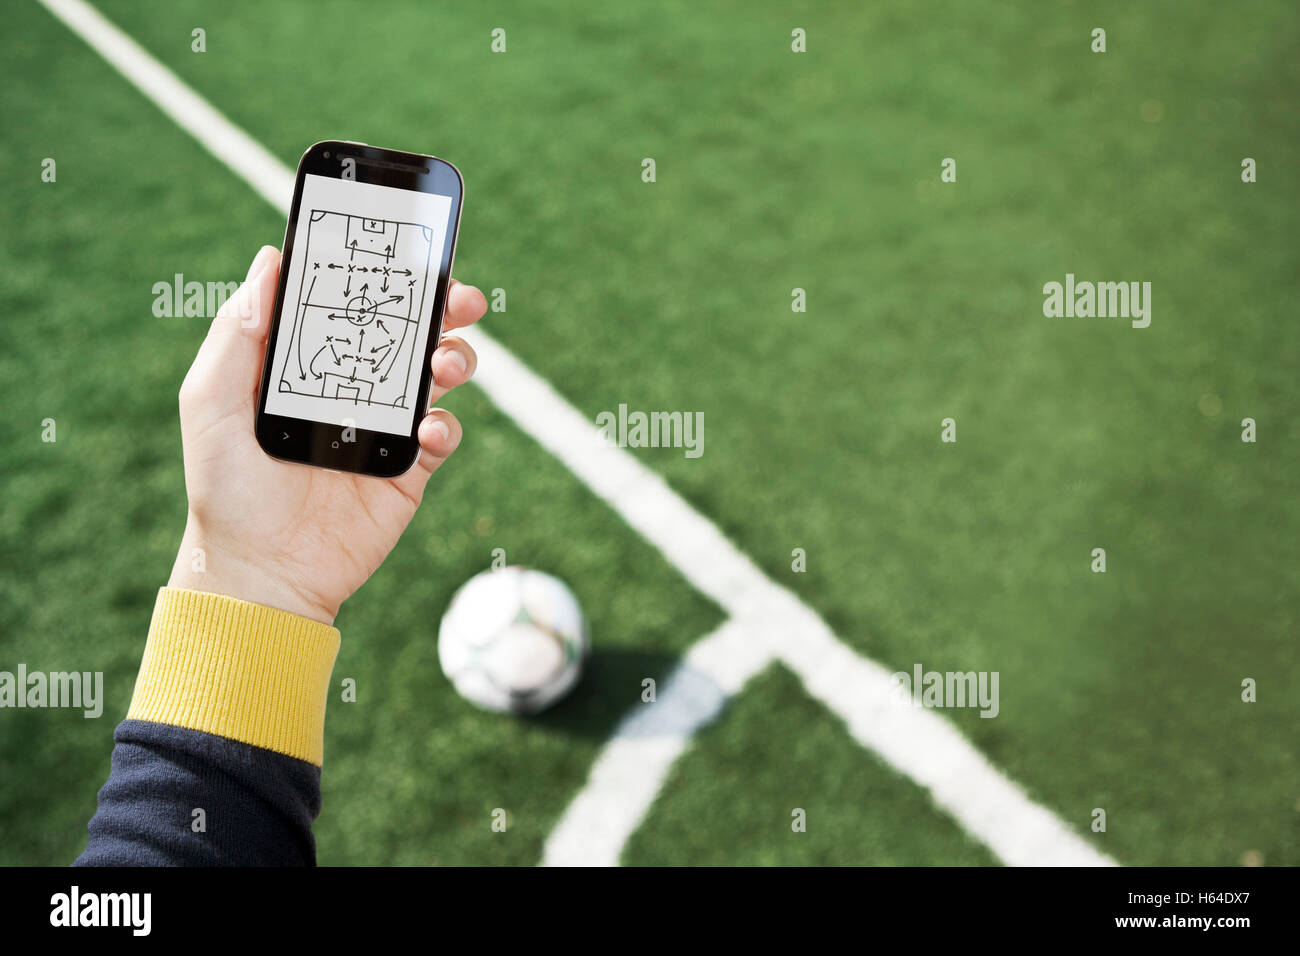 Hand holding smart phone with match tactics over soccer field - Stock Image